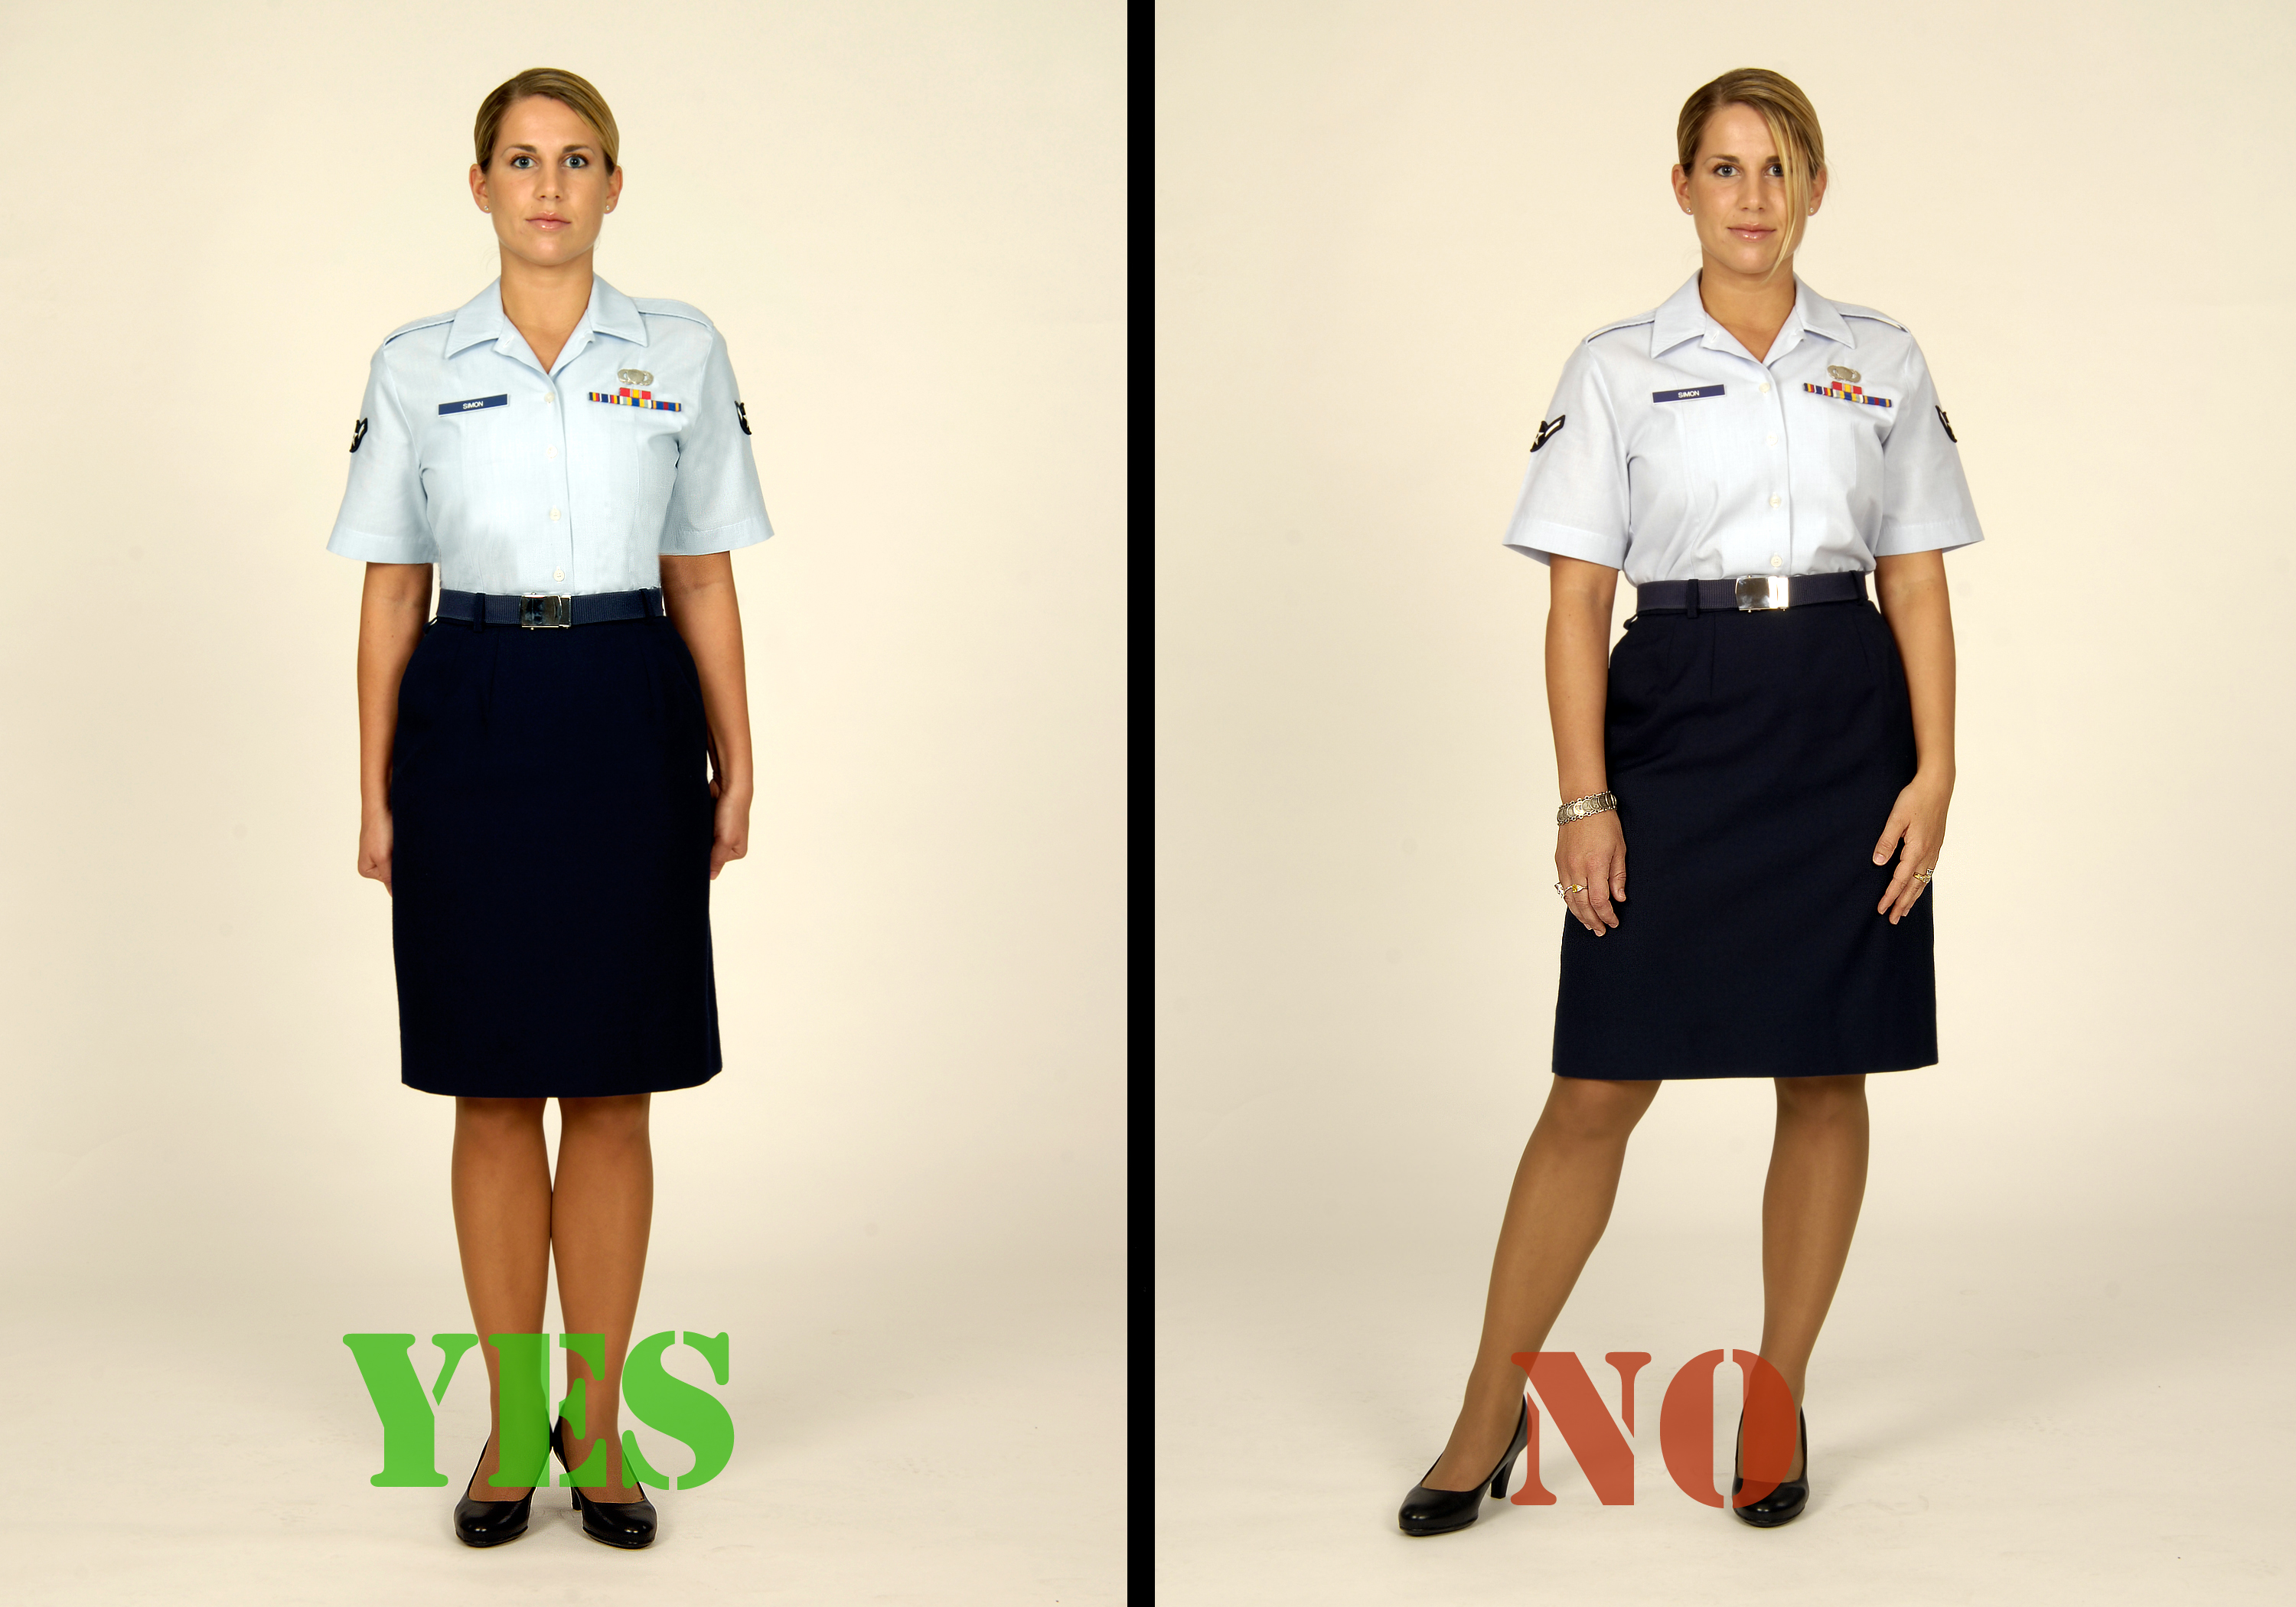 Appearance standards change > air force reserve command > news article.